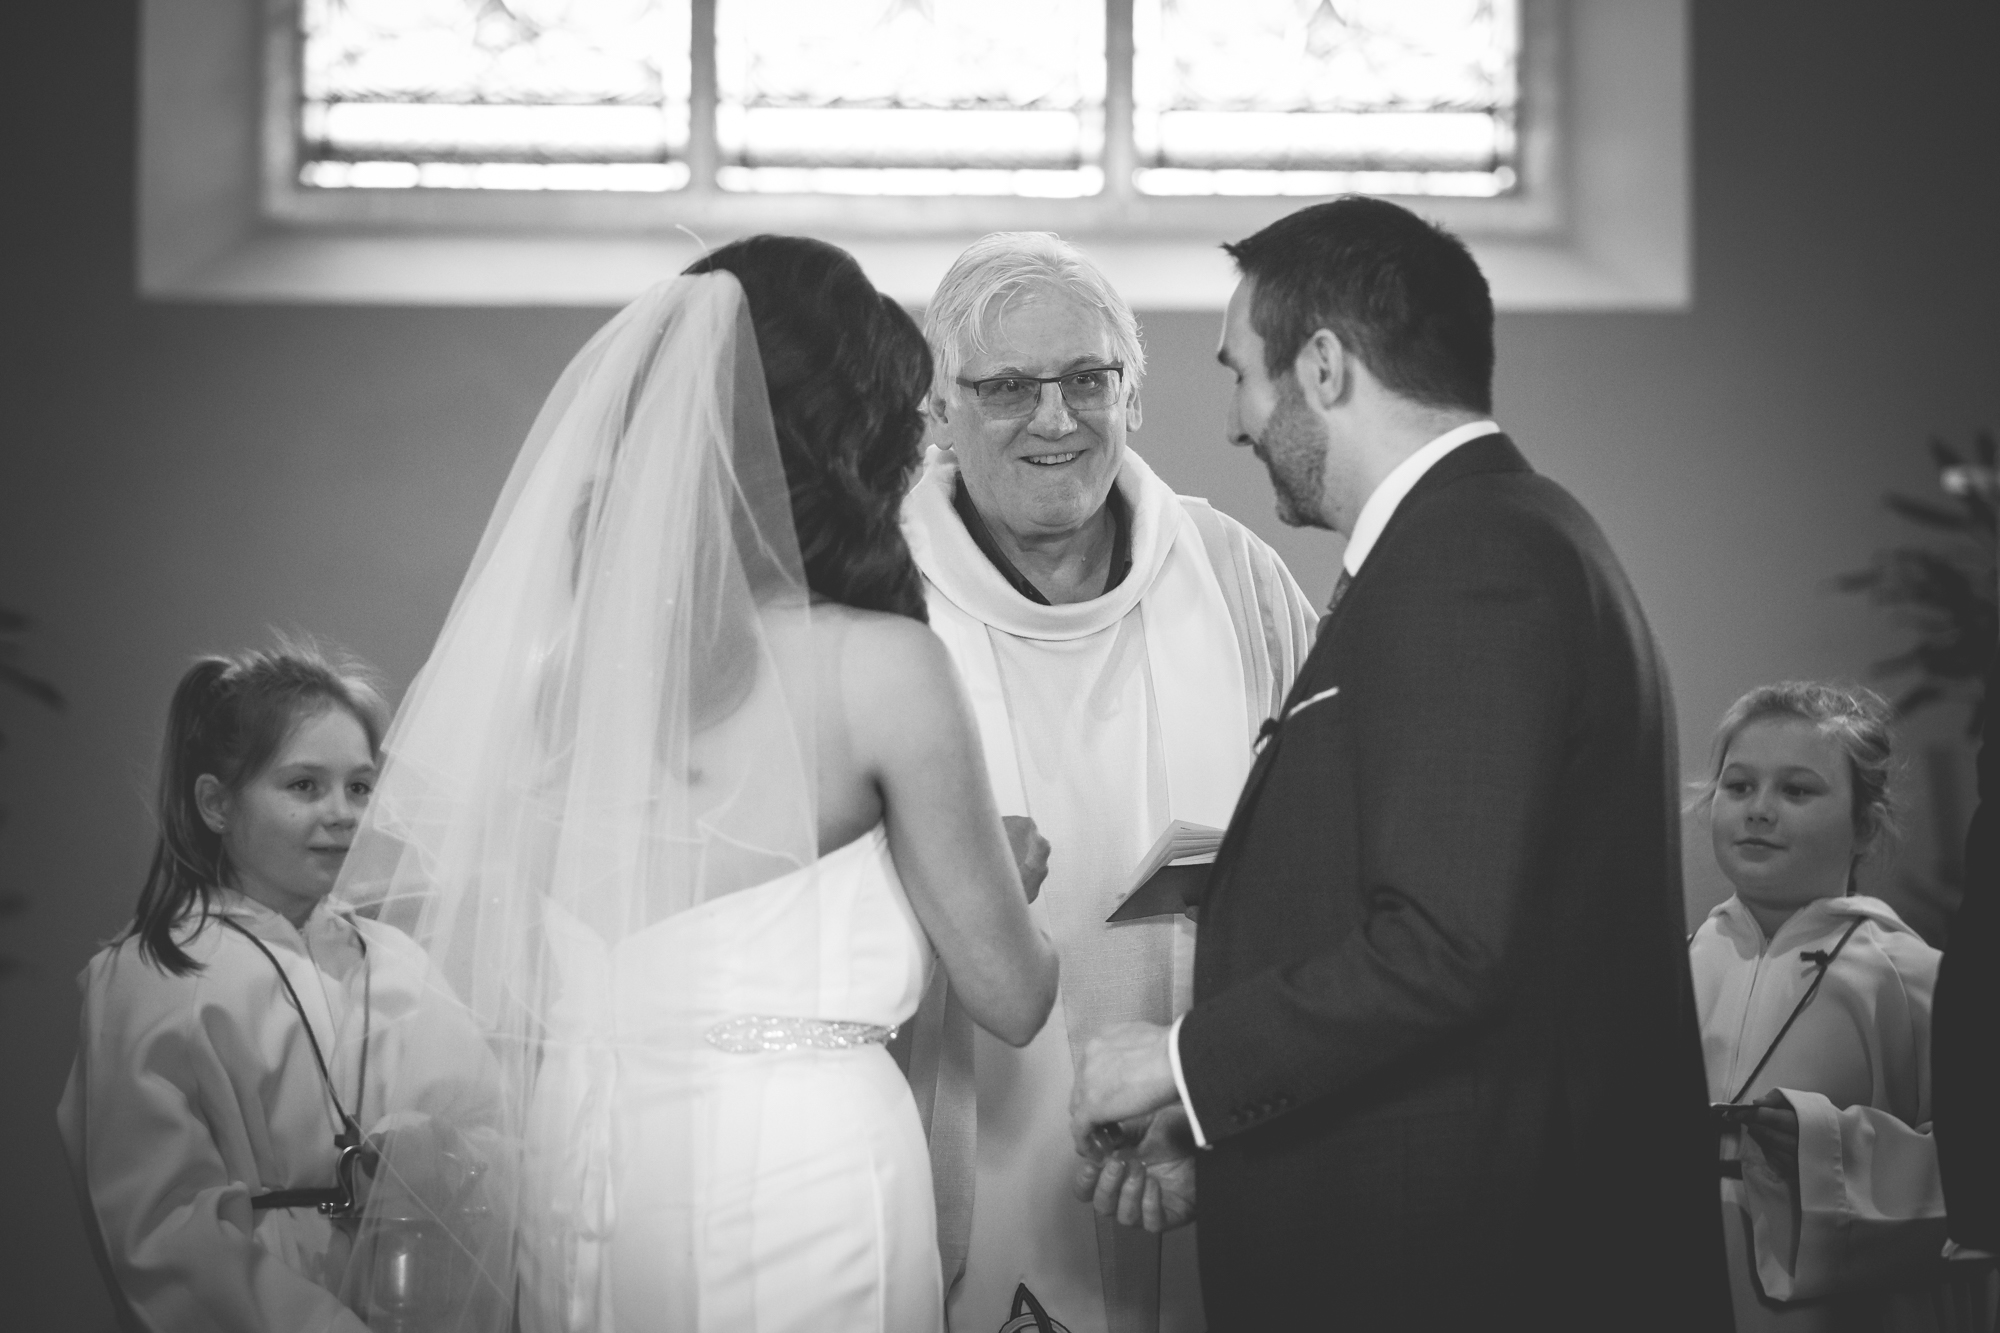 Francis&Oonagh-Ceremony-69.jpg